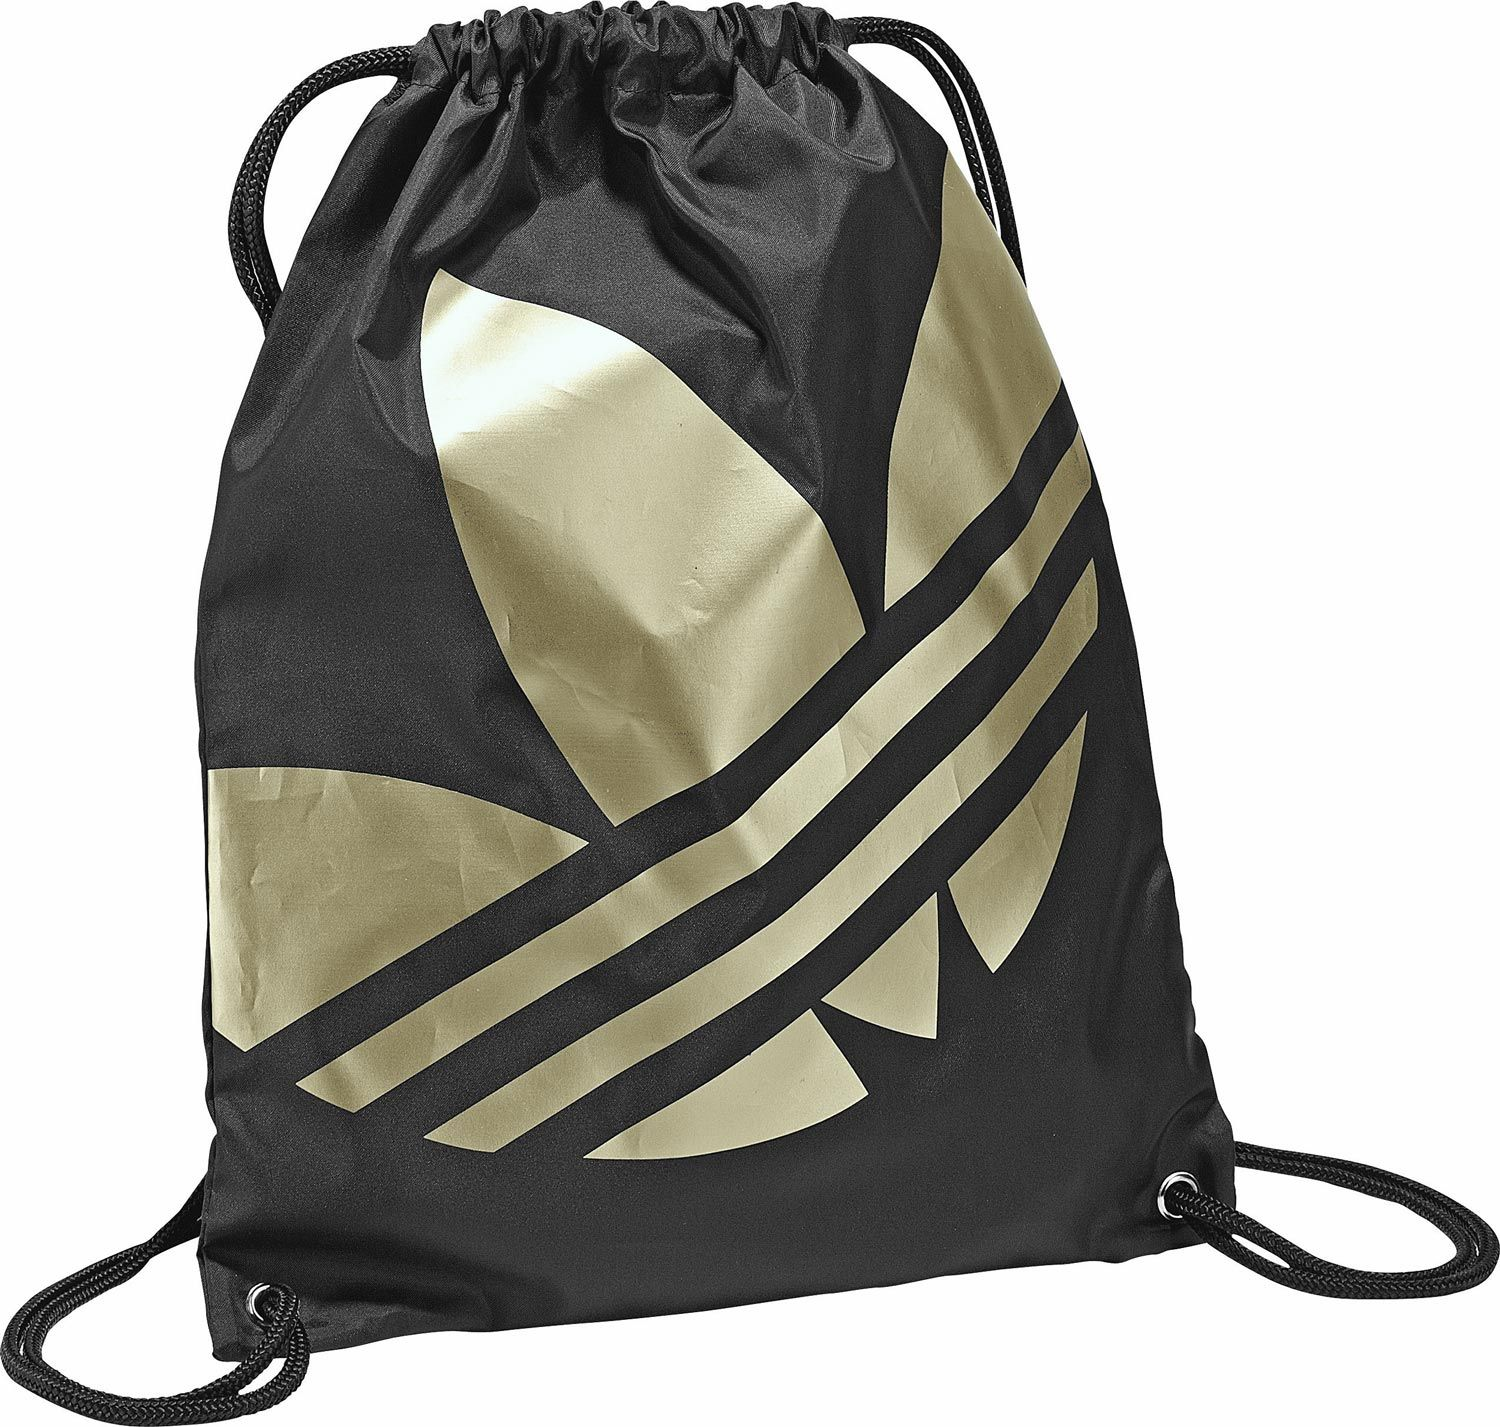 Adidas BTS Gym bag black gold | Bags, Gym bag, Black